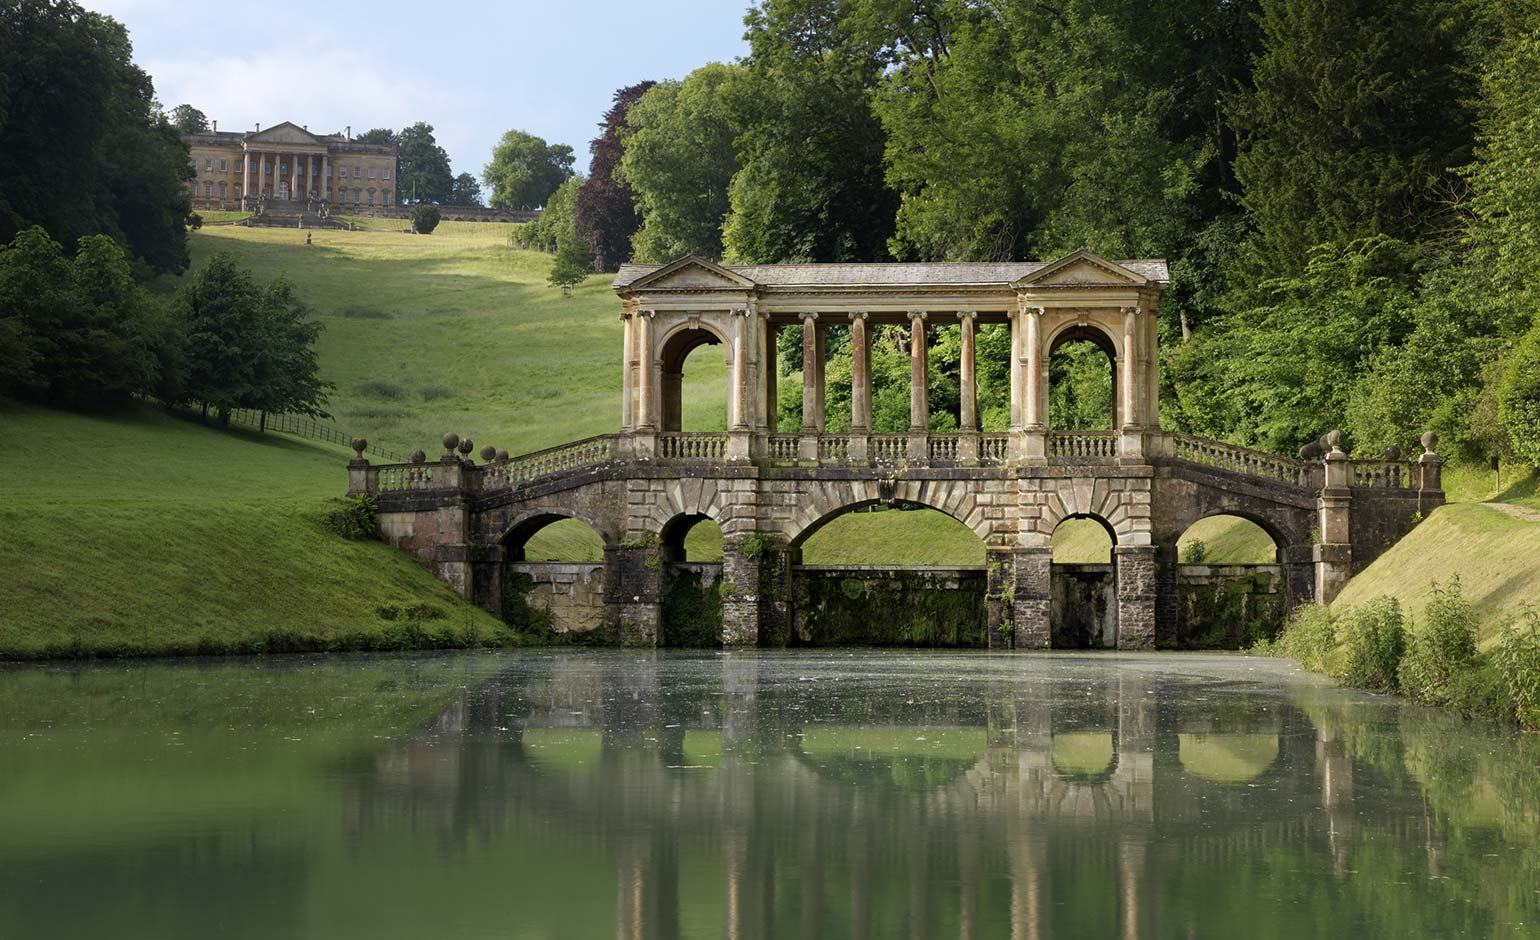 New guide to help those with autism experience Prior Park Landscape Garden | Bath Echo